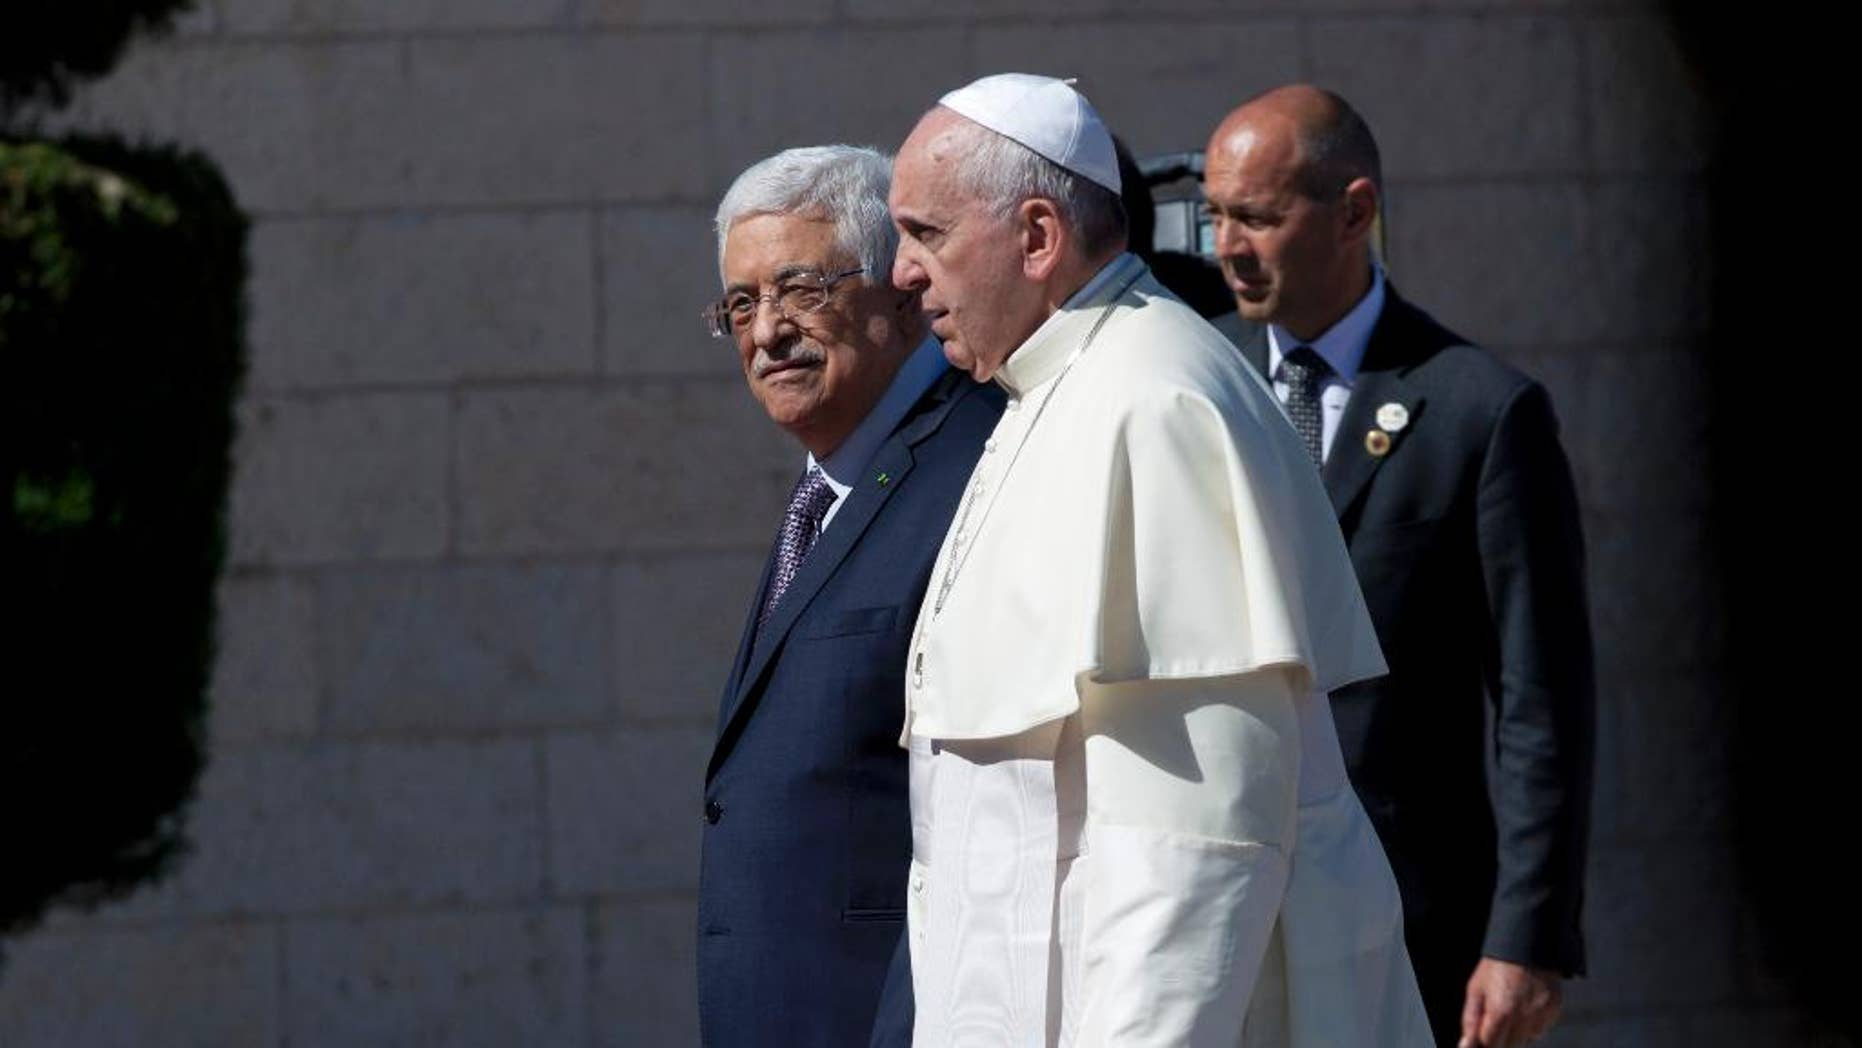 Palestinian President Mahmoud Abbas, left, receives Pope Francis upon his arrival at the Palestinian Authority headquarters in the West Bank city of Bethlehem on Sunday, May 25, 2014. Francis landed Sunday in the West Bank town of Bethlehem in a symbolic nod to Palestinian aspirations for their own state as he began a busy second day of his Mideast pilgrimage. (AP Photo/Nasser Nasser)